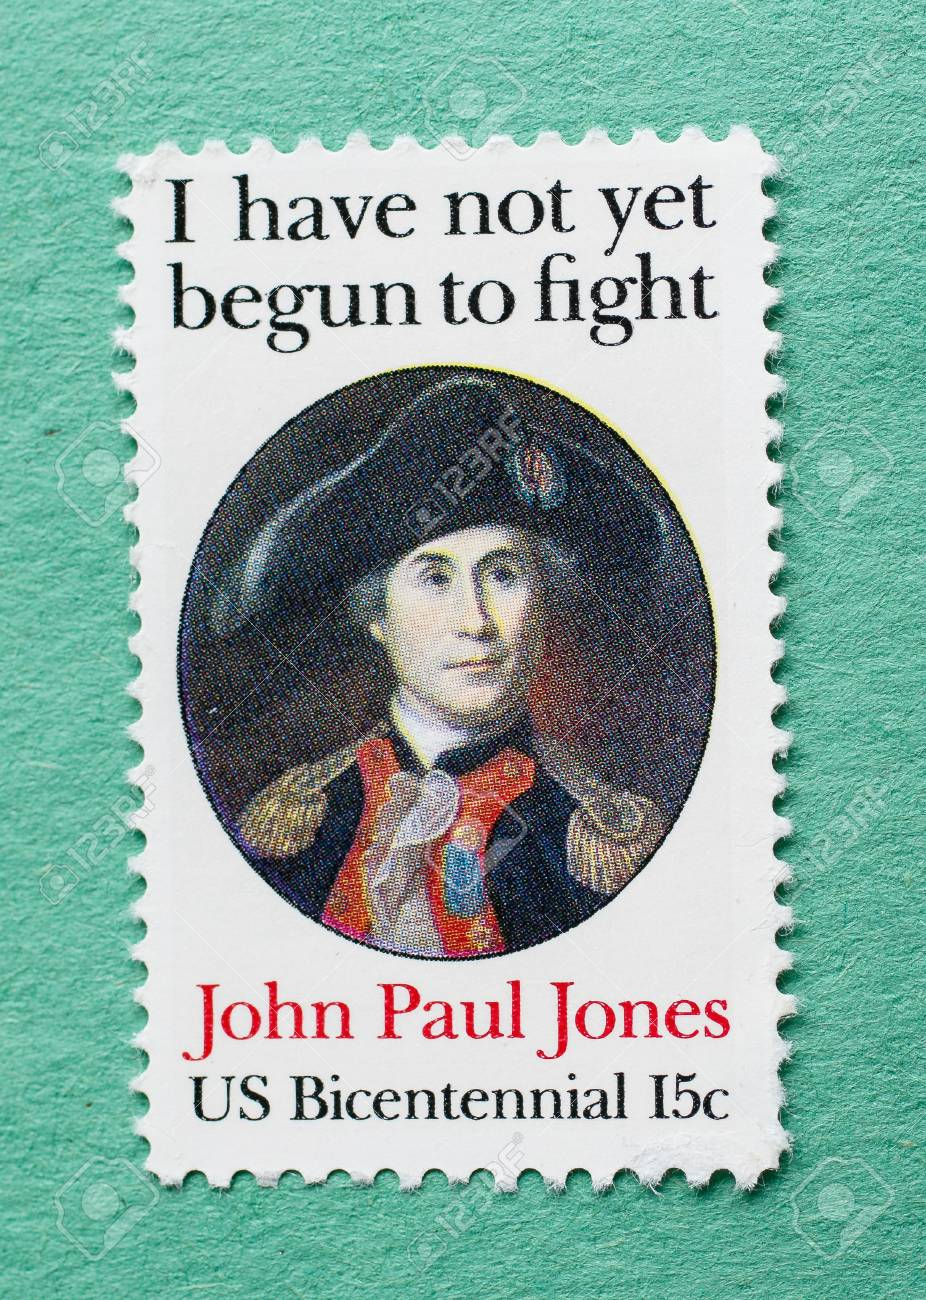 Us Postage Stamp With A Portrait Of John Paul Jones Also Featuring